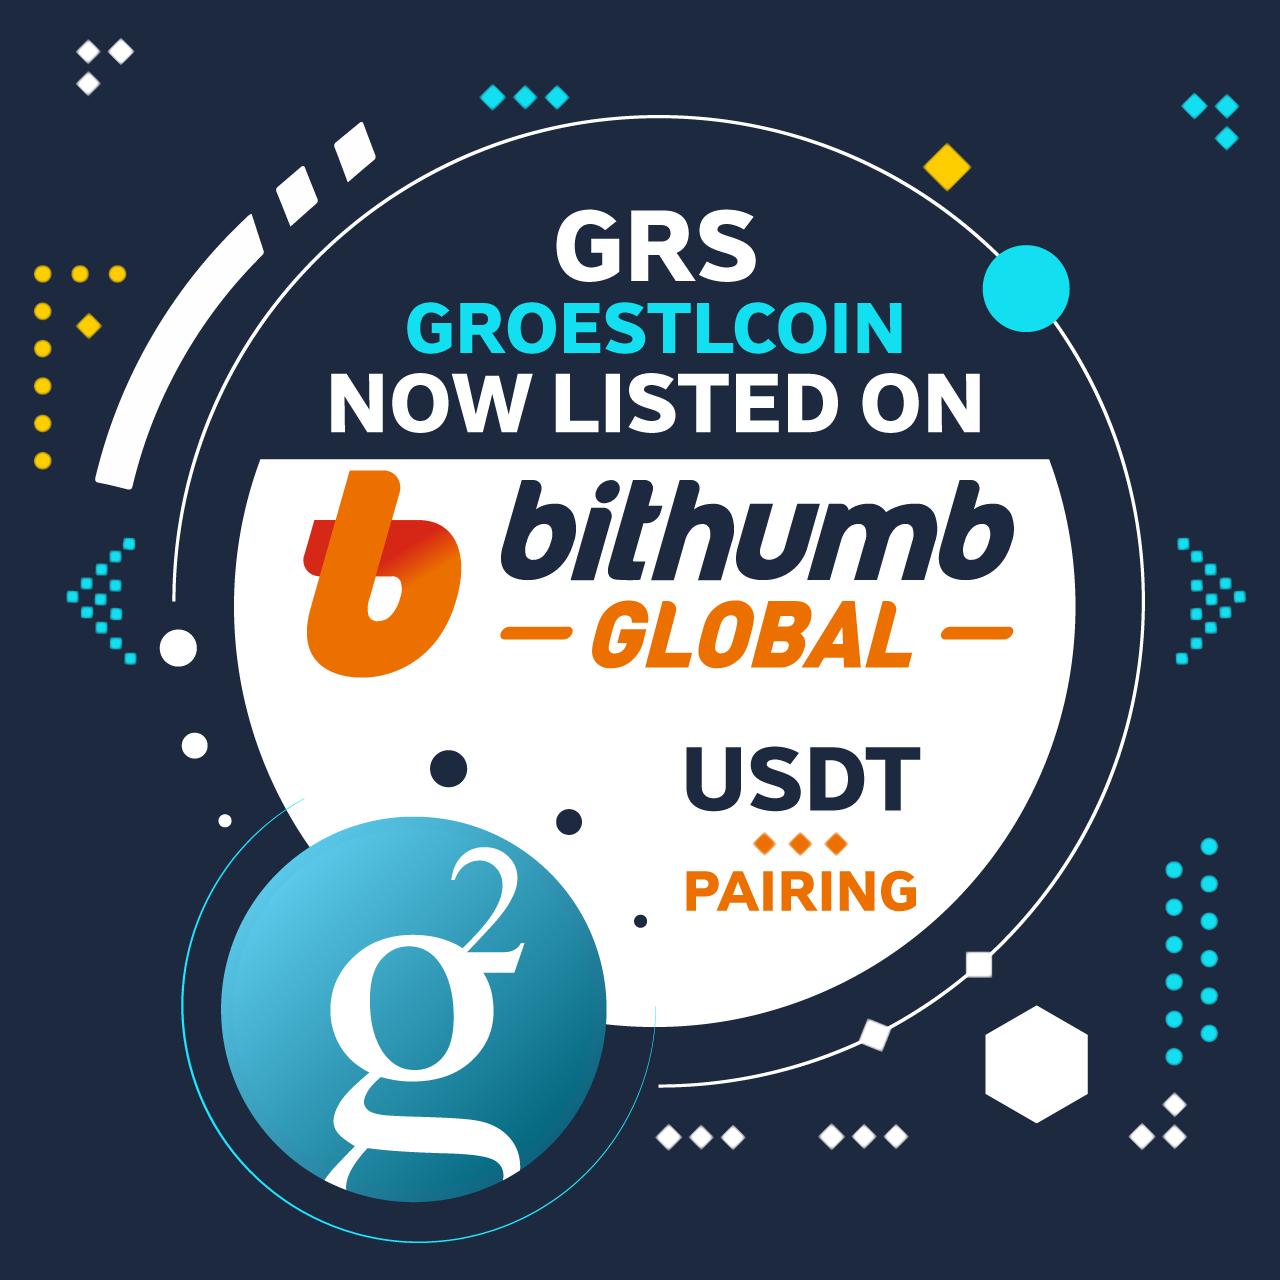 Groestlcoin $GRS is now listed on Bithumb Global !